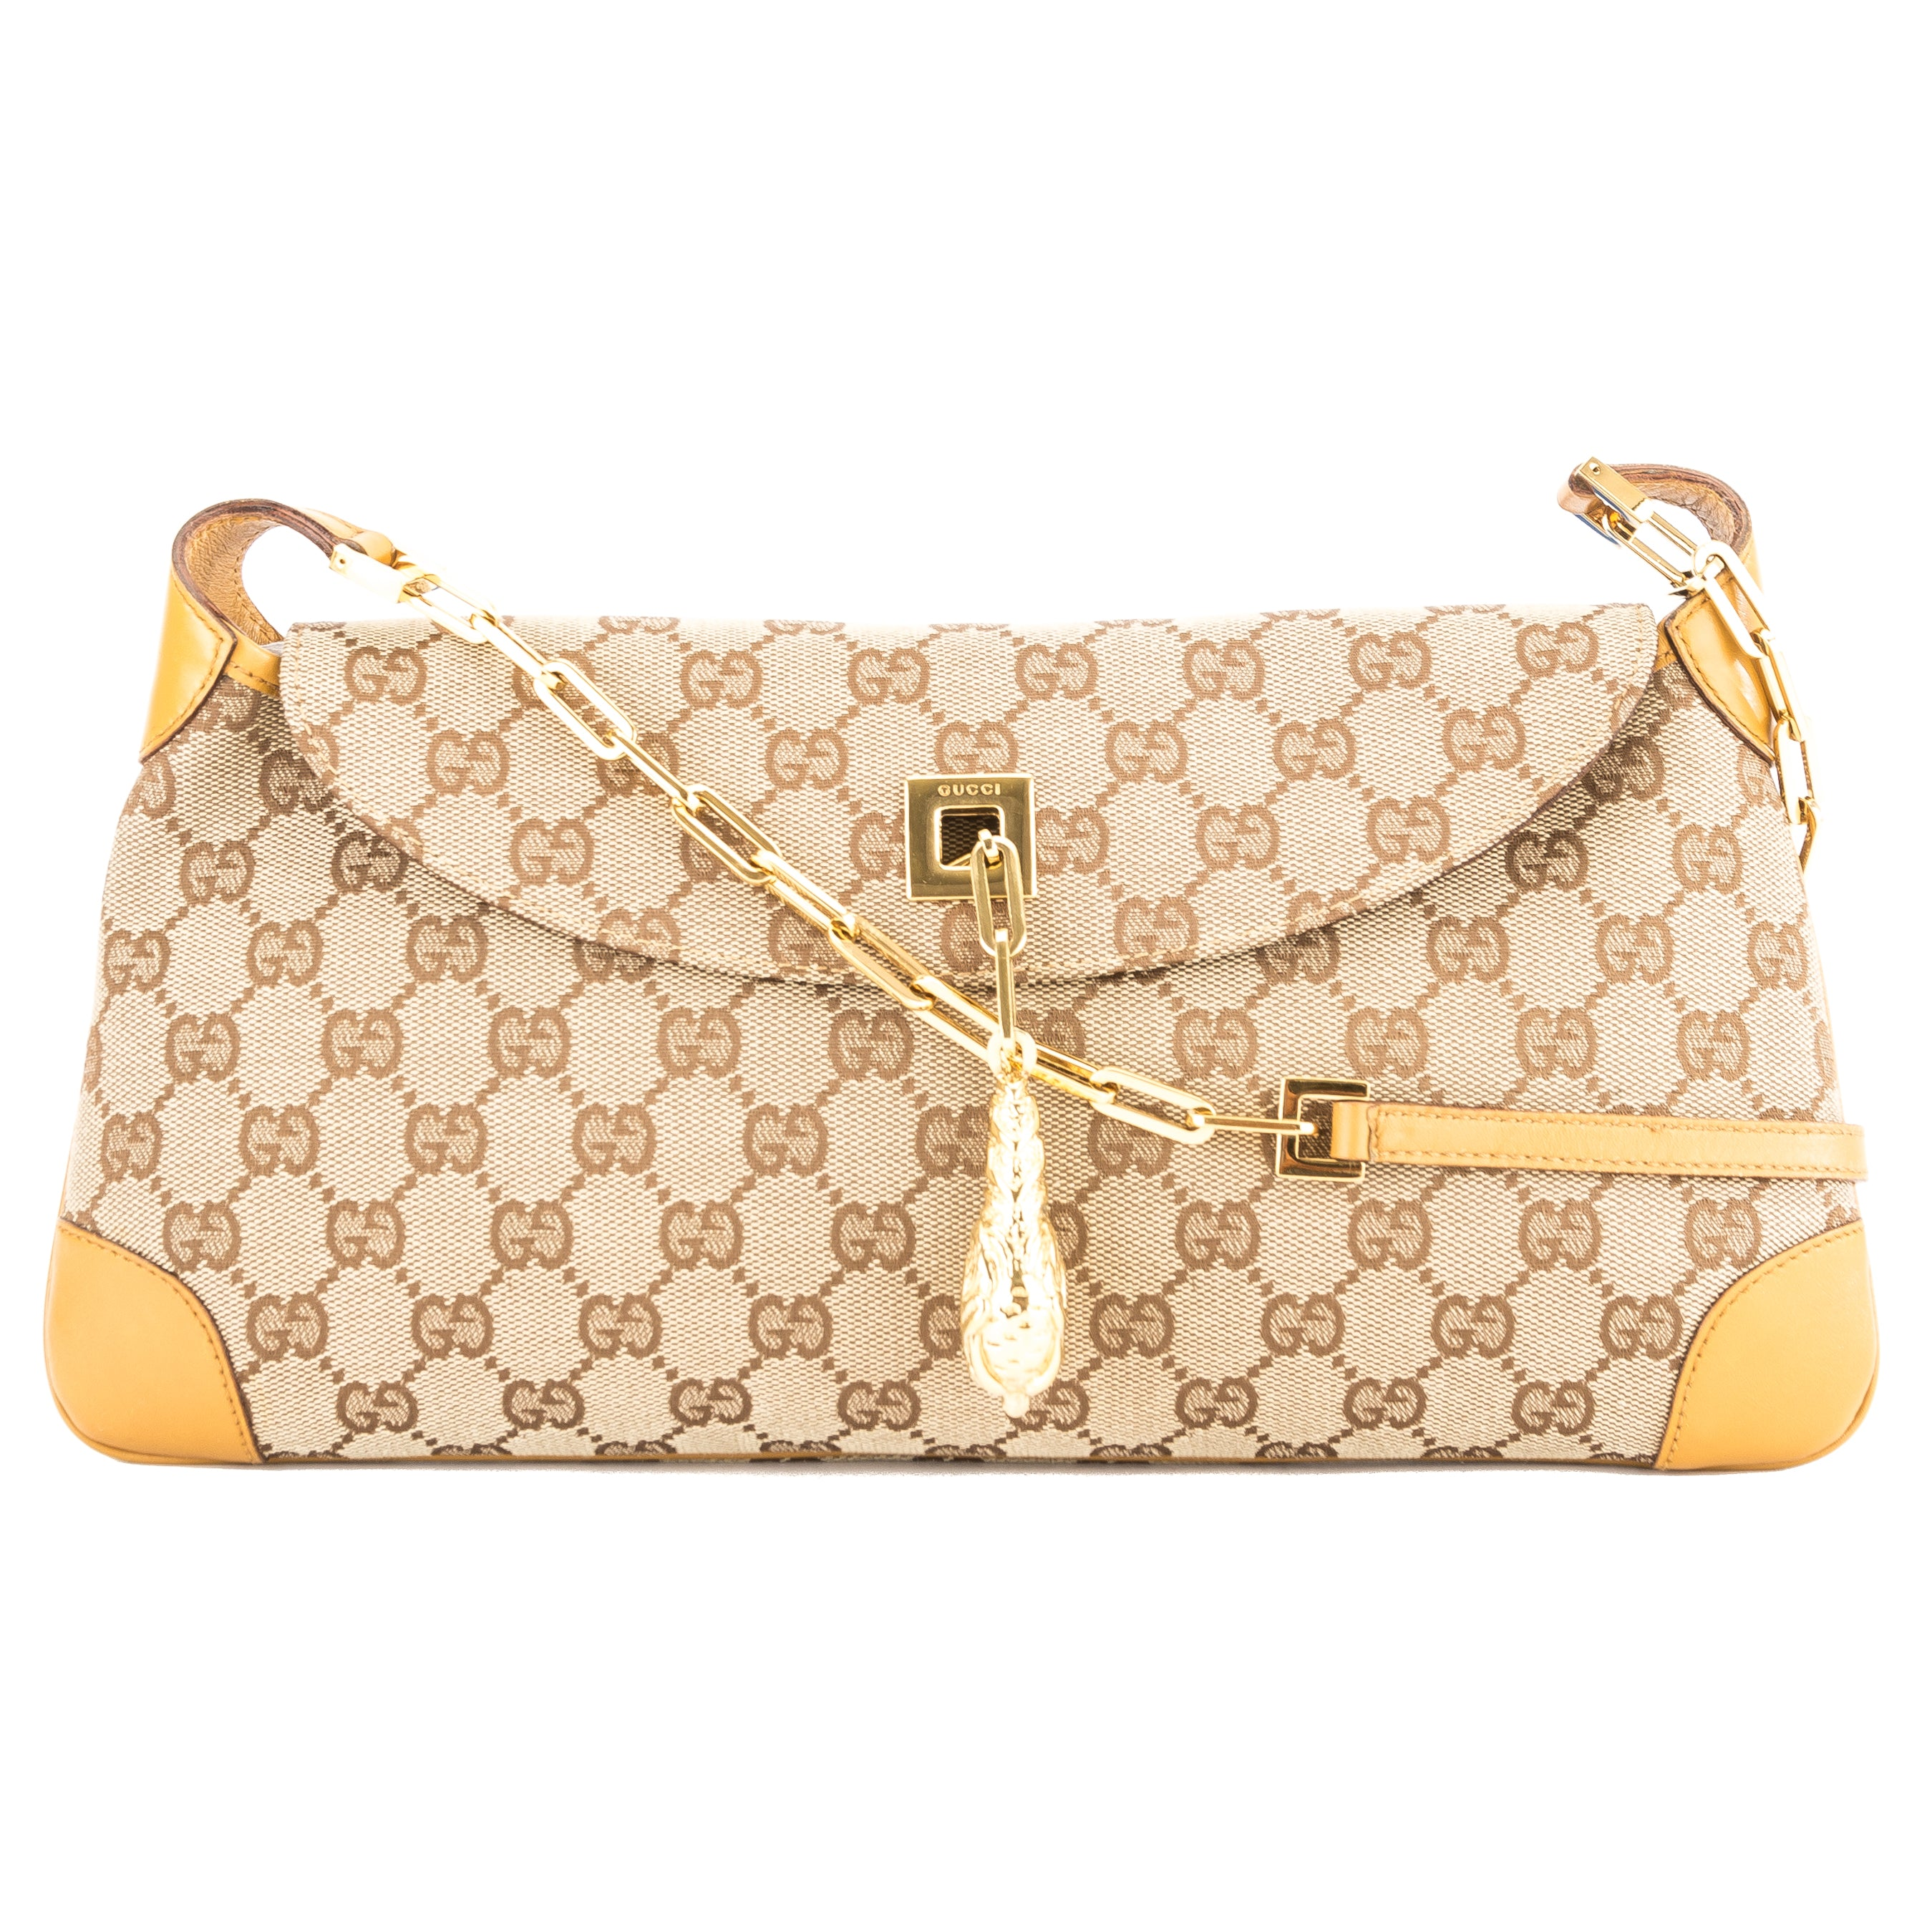 258bb007cd6a Gucci Tan Leather GG Canvas Dragon Shoulder Bag (Pre Owned ...